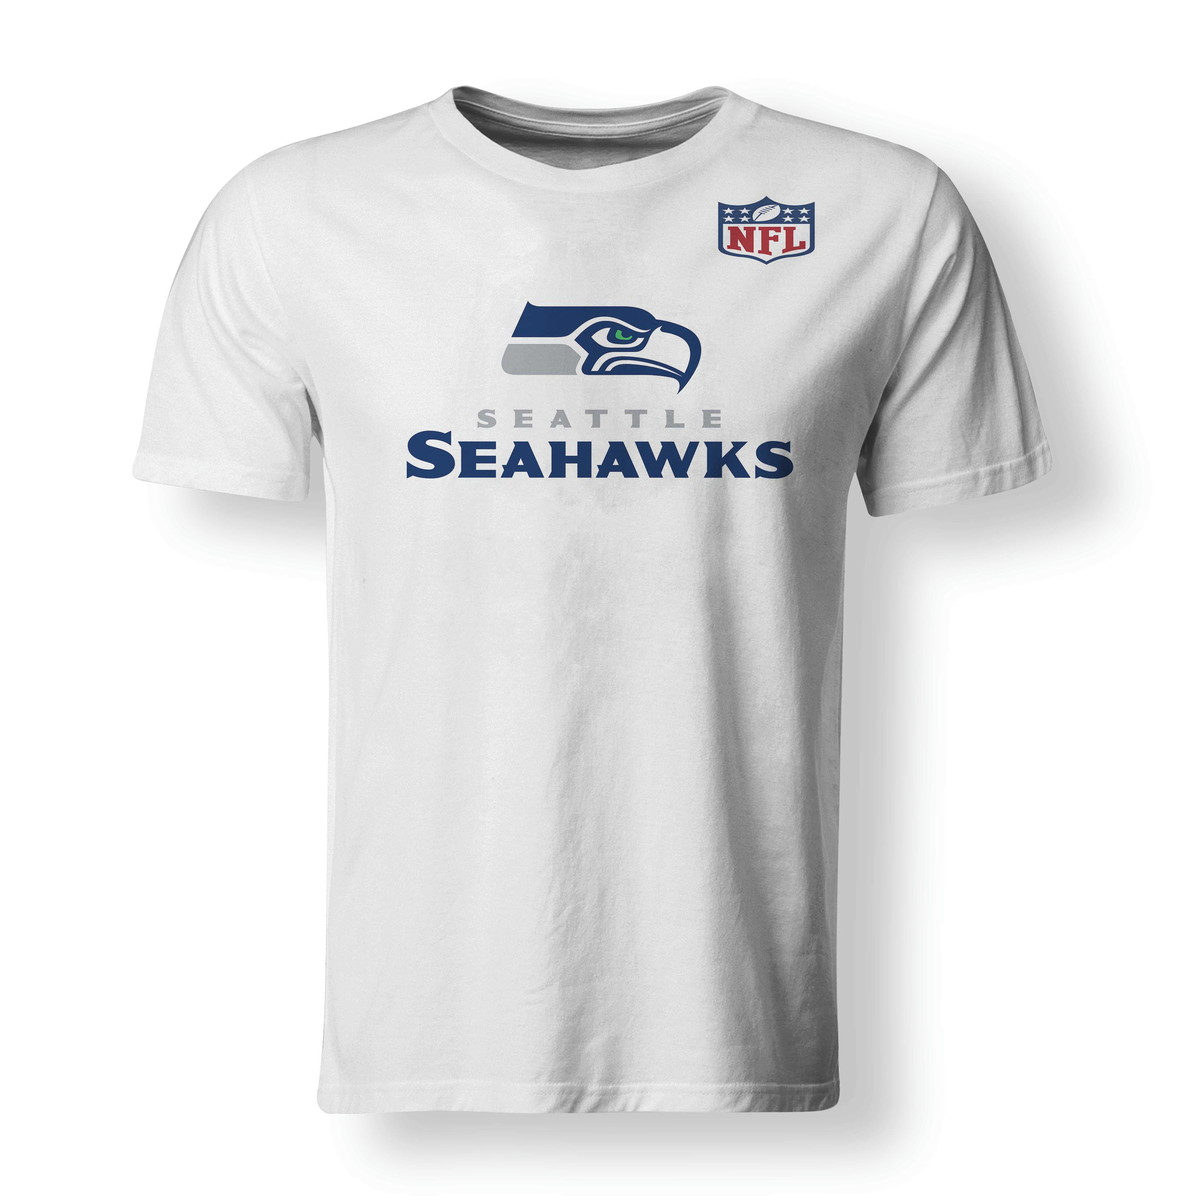 Camiseta Seattle Seahawks NFL - A3 no Elo7  5b9e75659e7